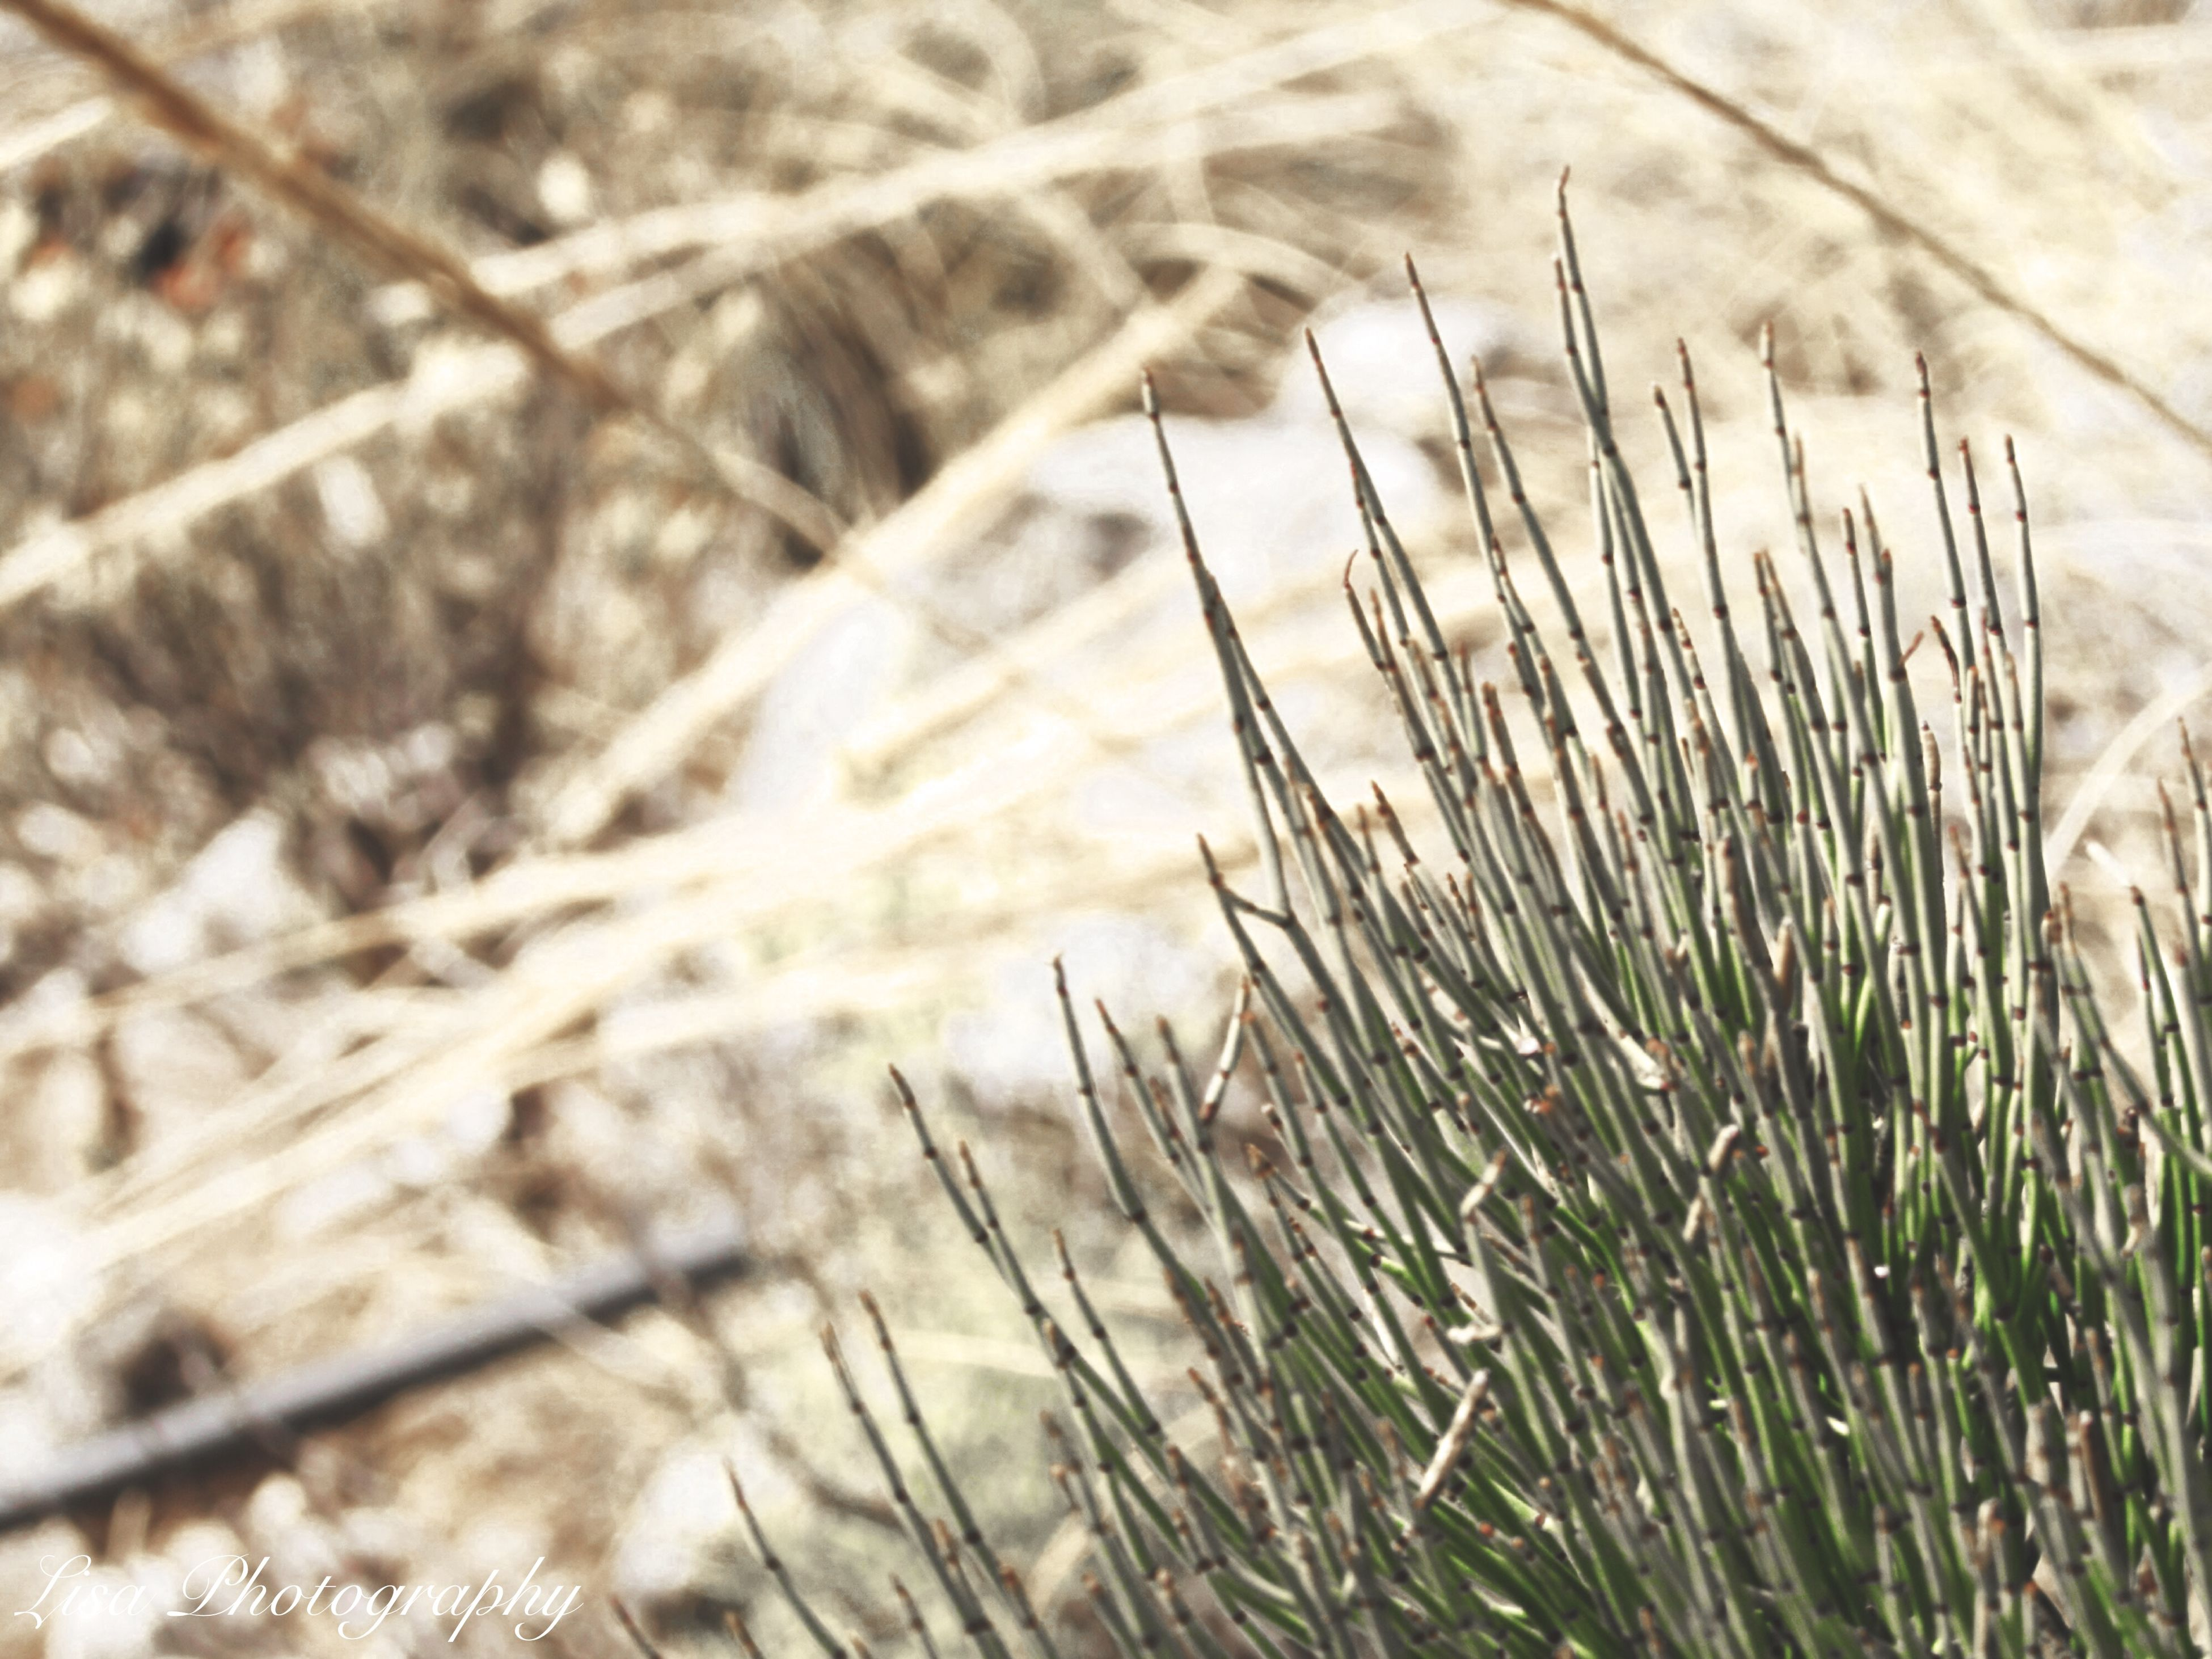 growth, plant, grass, focus on foreground, close-up, field, nature, selective focus, tranquility, growing, dry, day, outdoors, no people, beauty in nature, stem, sunlight, twig, fragility, green color